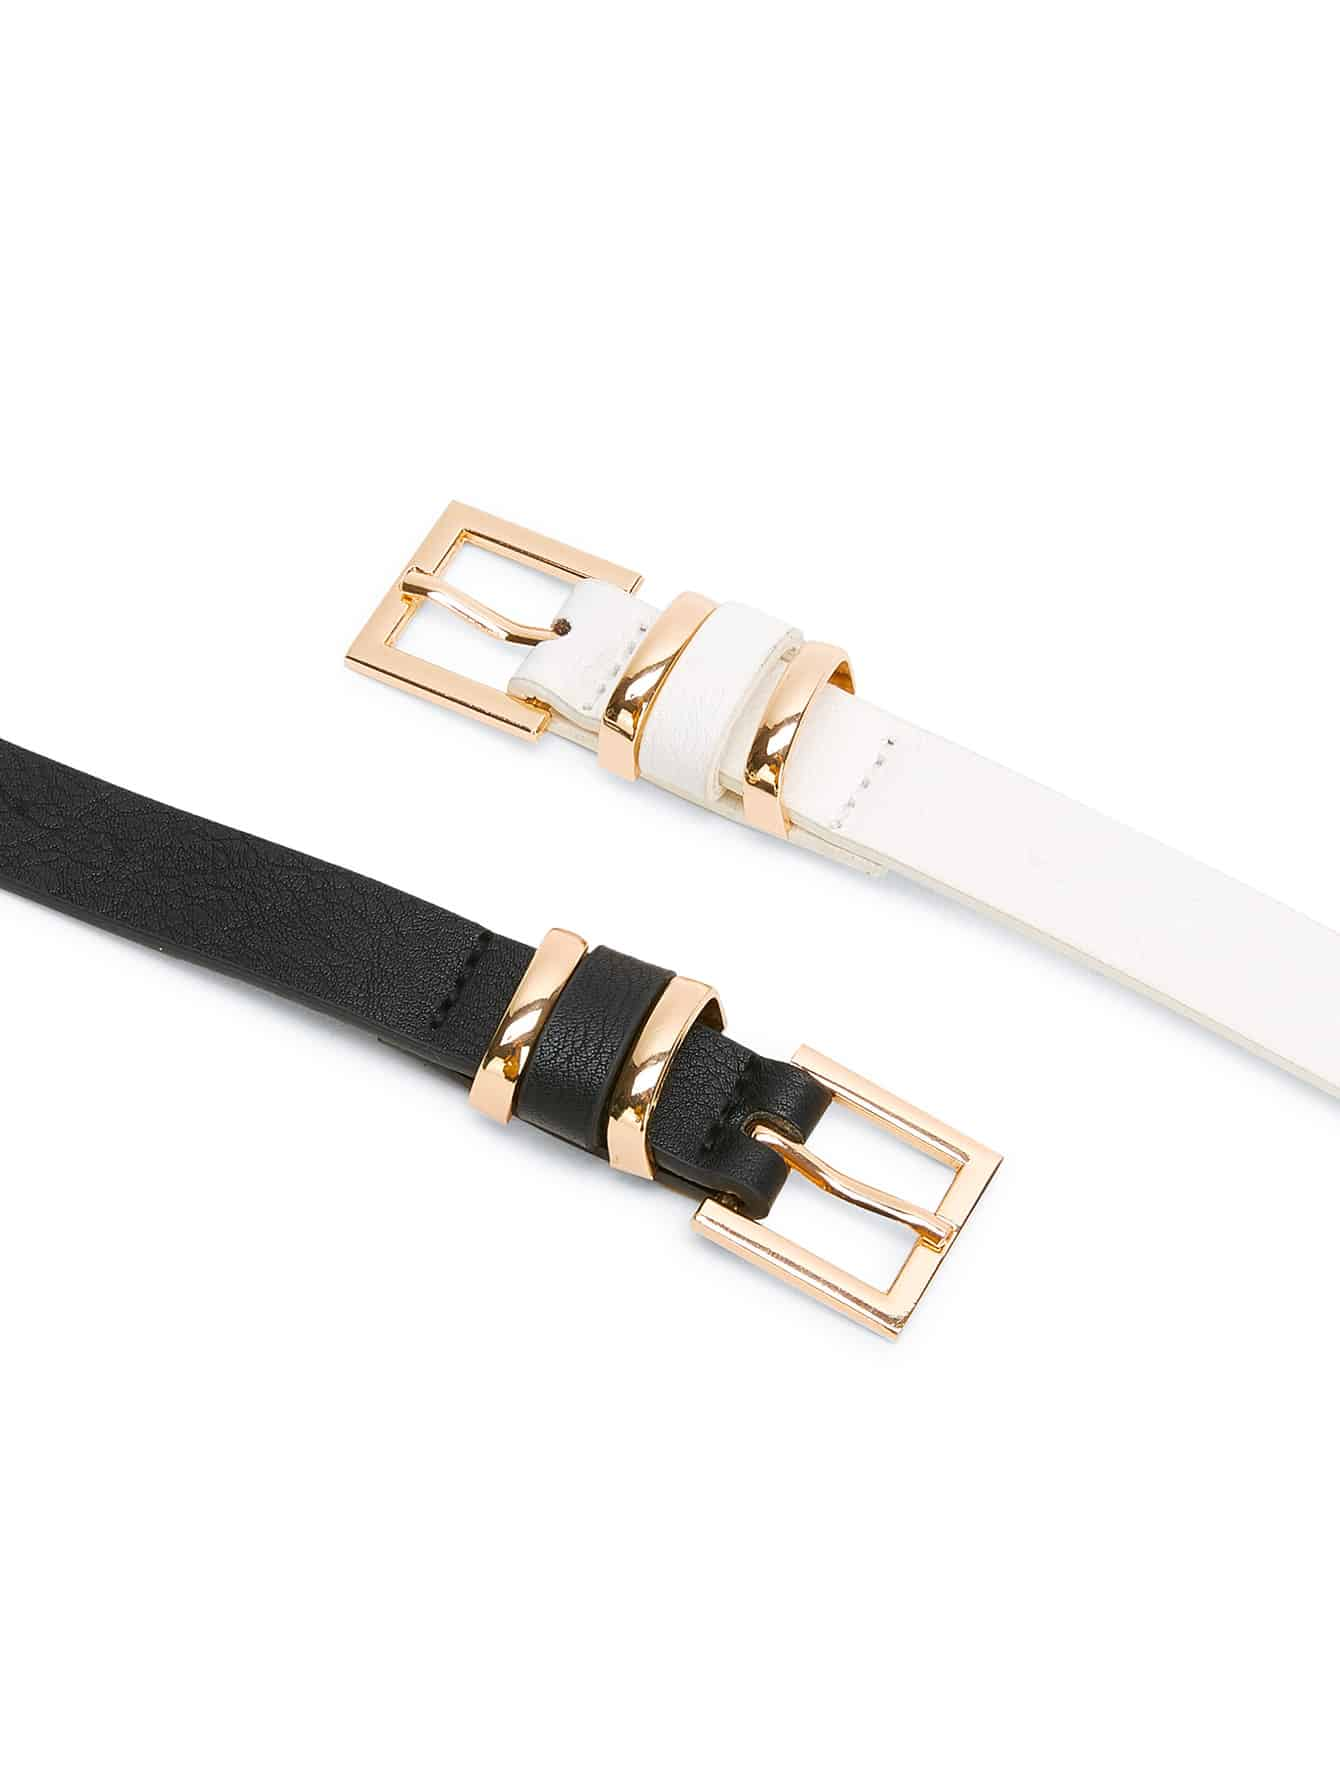 Metal Buckle Belt 2pcs - FLJ CORPORATIONS